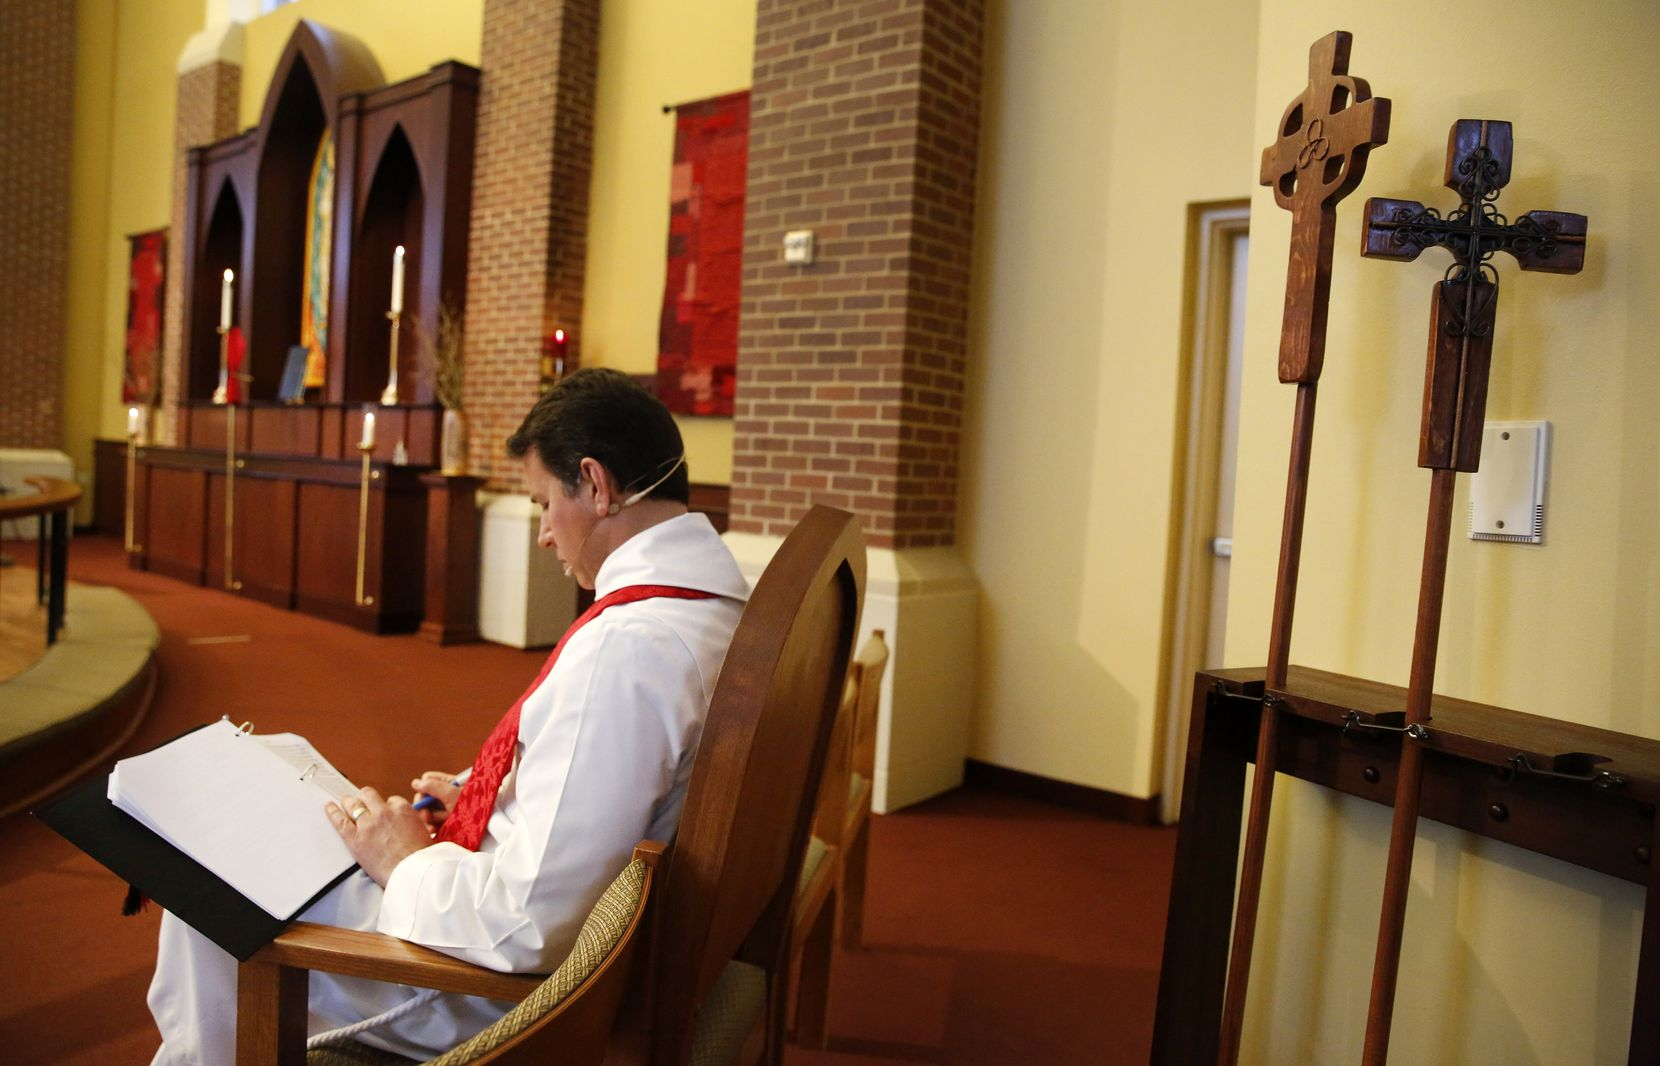 Father Clayton Elder looks over the online schedule for their Holy Thursday service and washing of the feet. (Tom Fox/The Dallas Morning News)